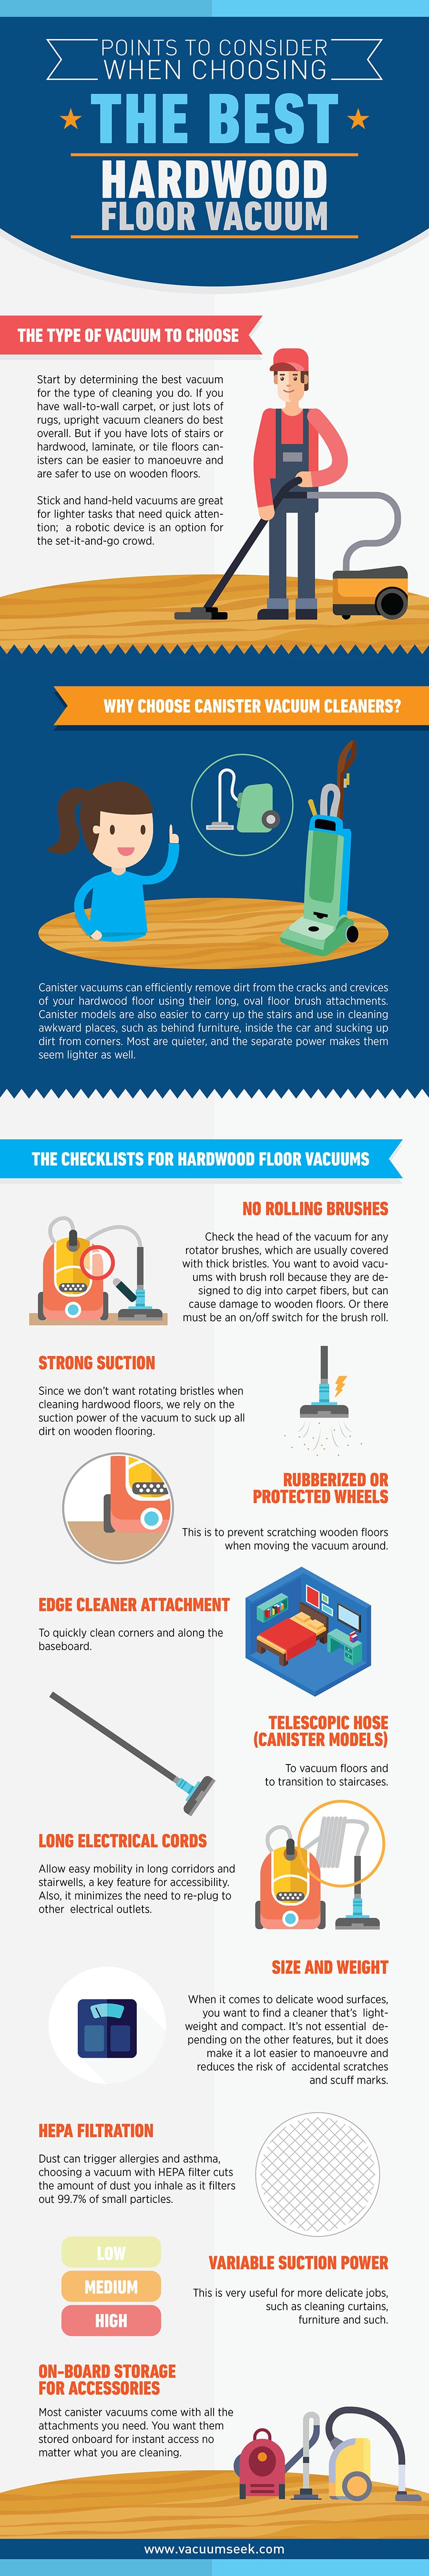 hardwood-floor-infographic-final